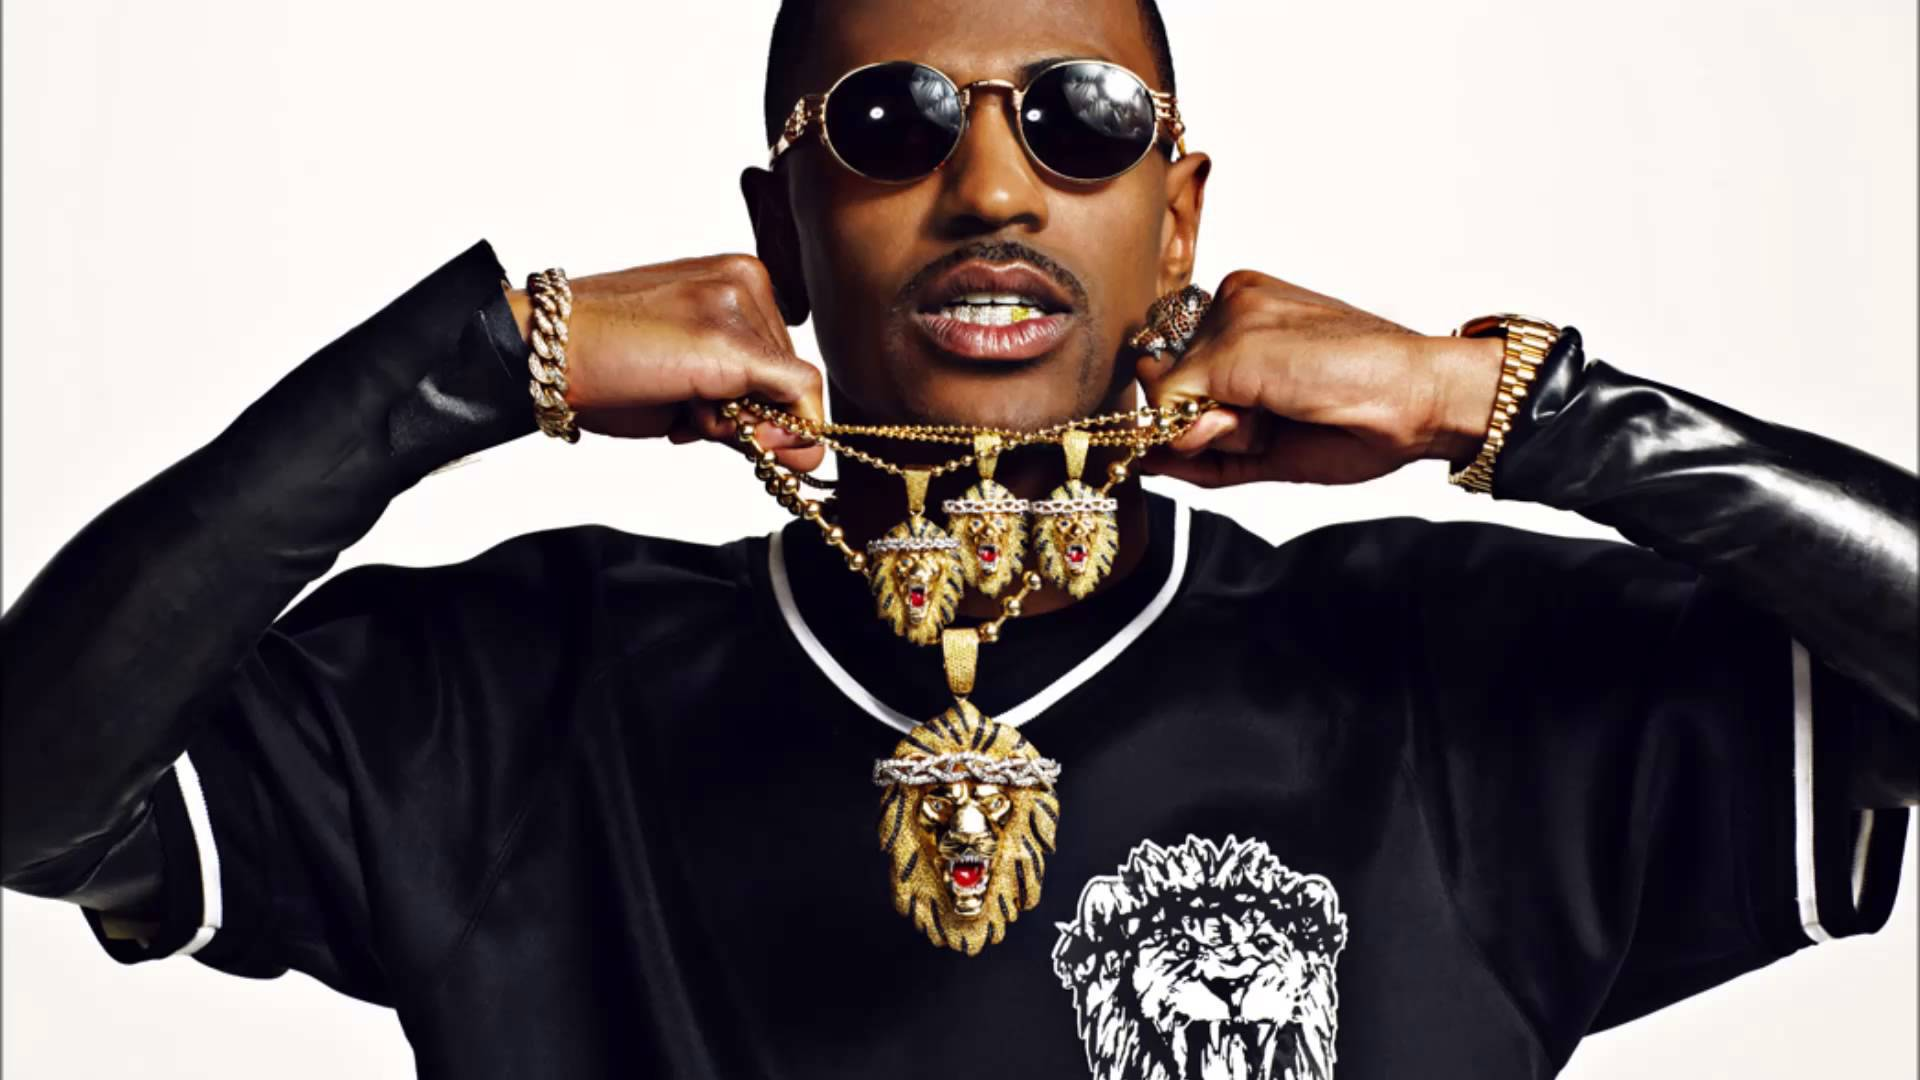 Big Sean Wallpapers Images Photos Pictures Backgrounds